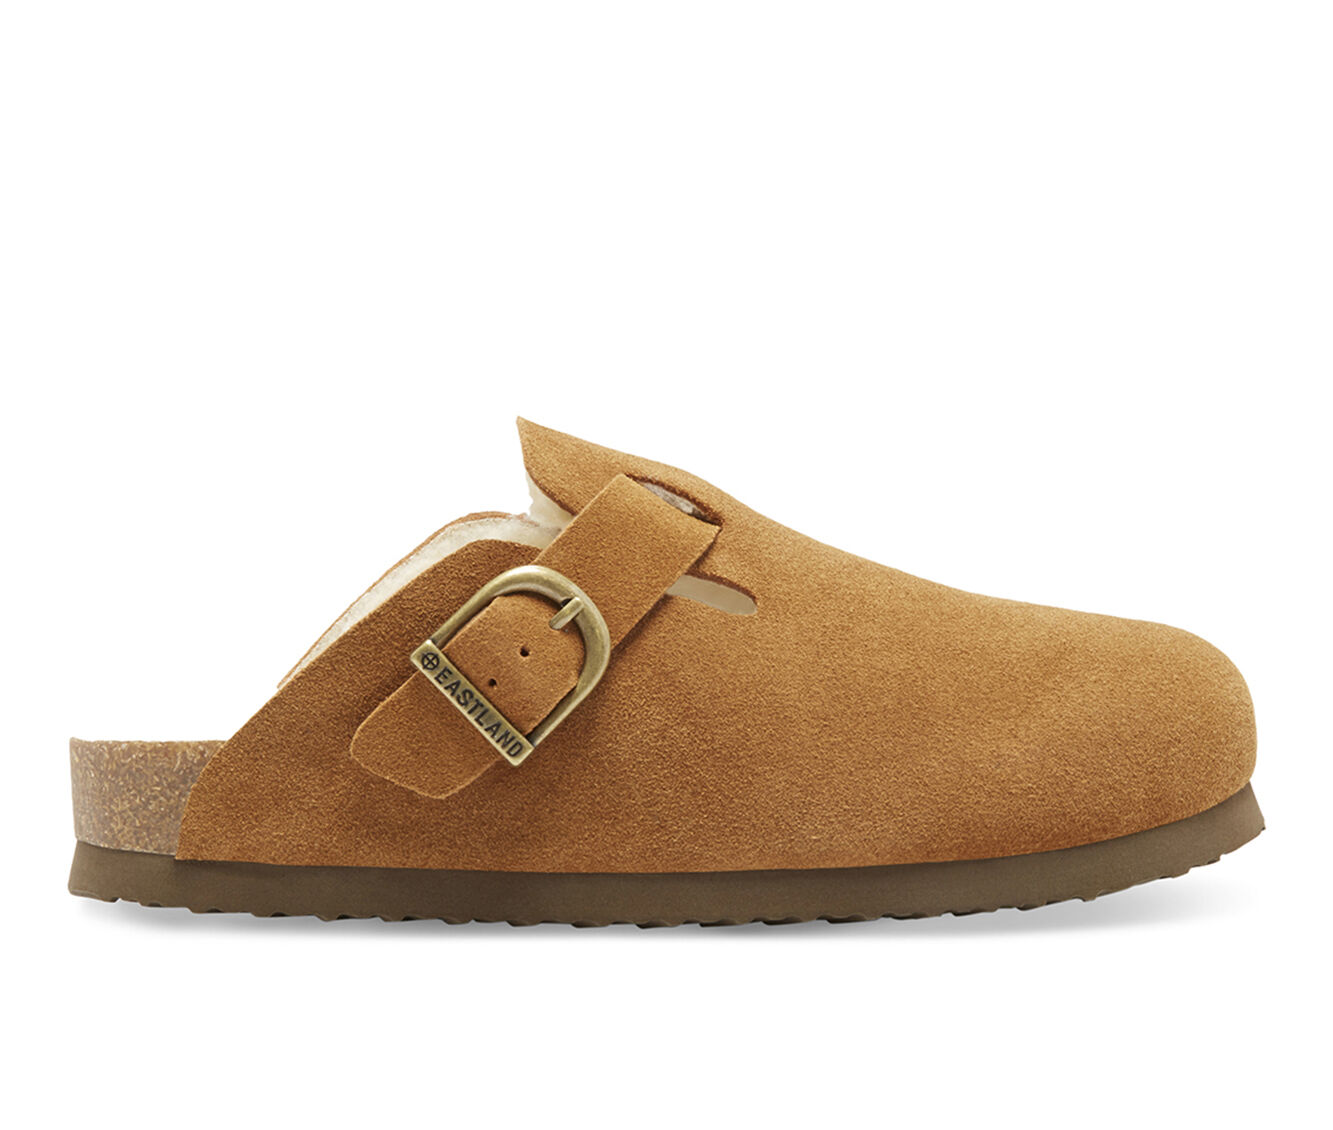 For Cheap Women's Eastland Gina Lined Clogs Nutmeg